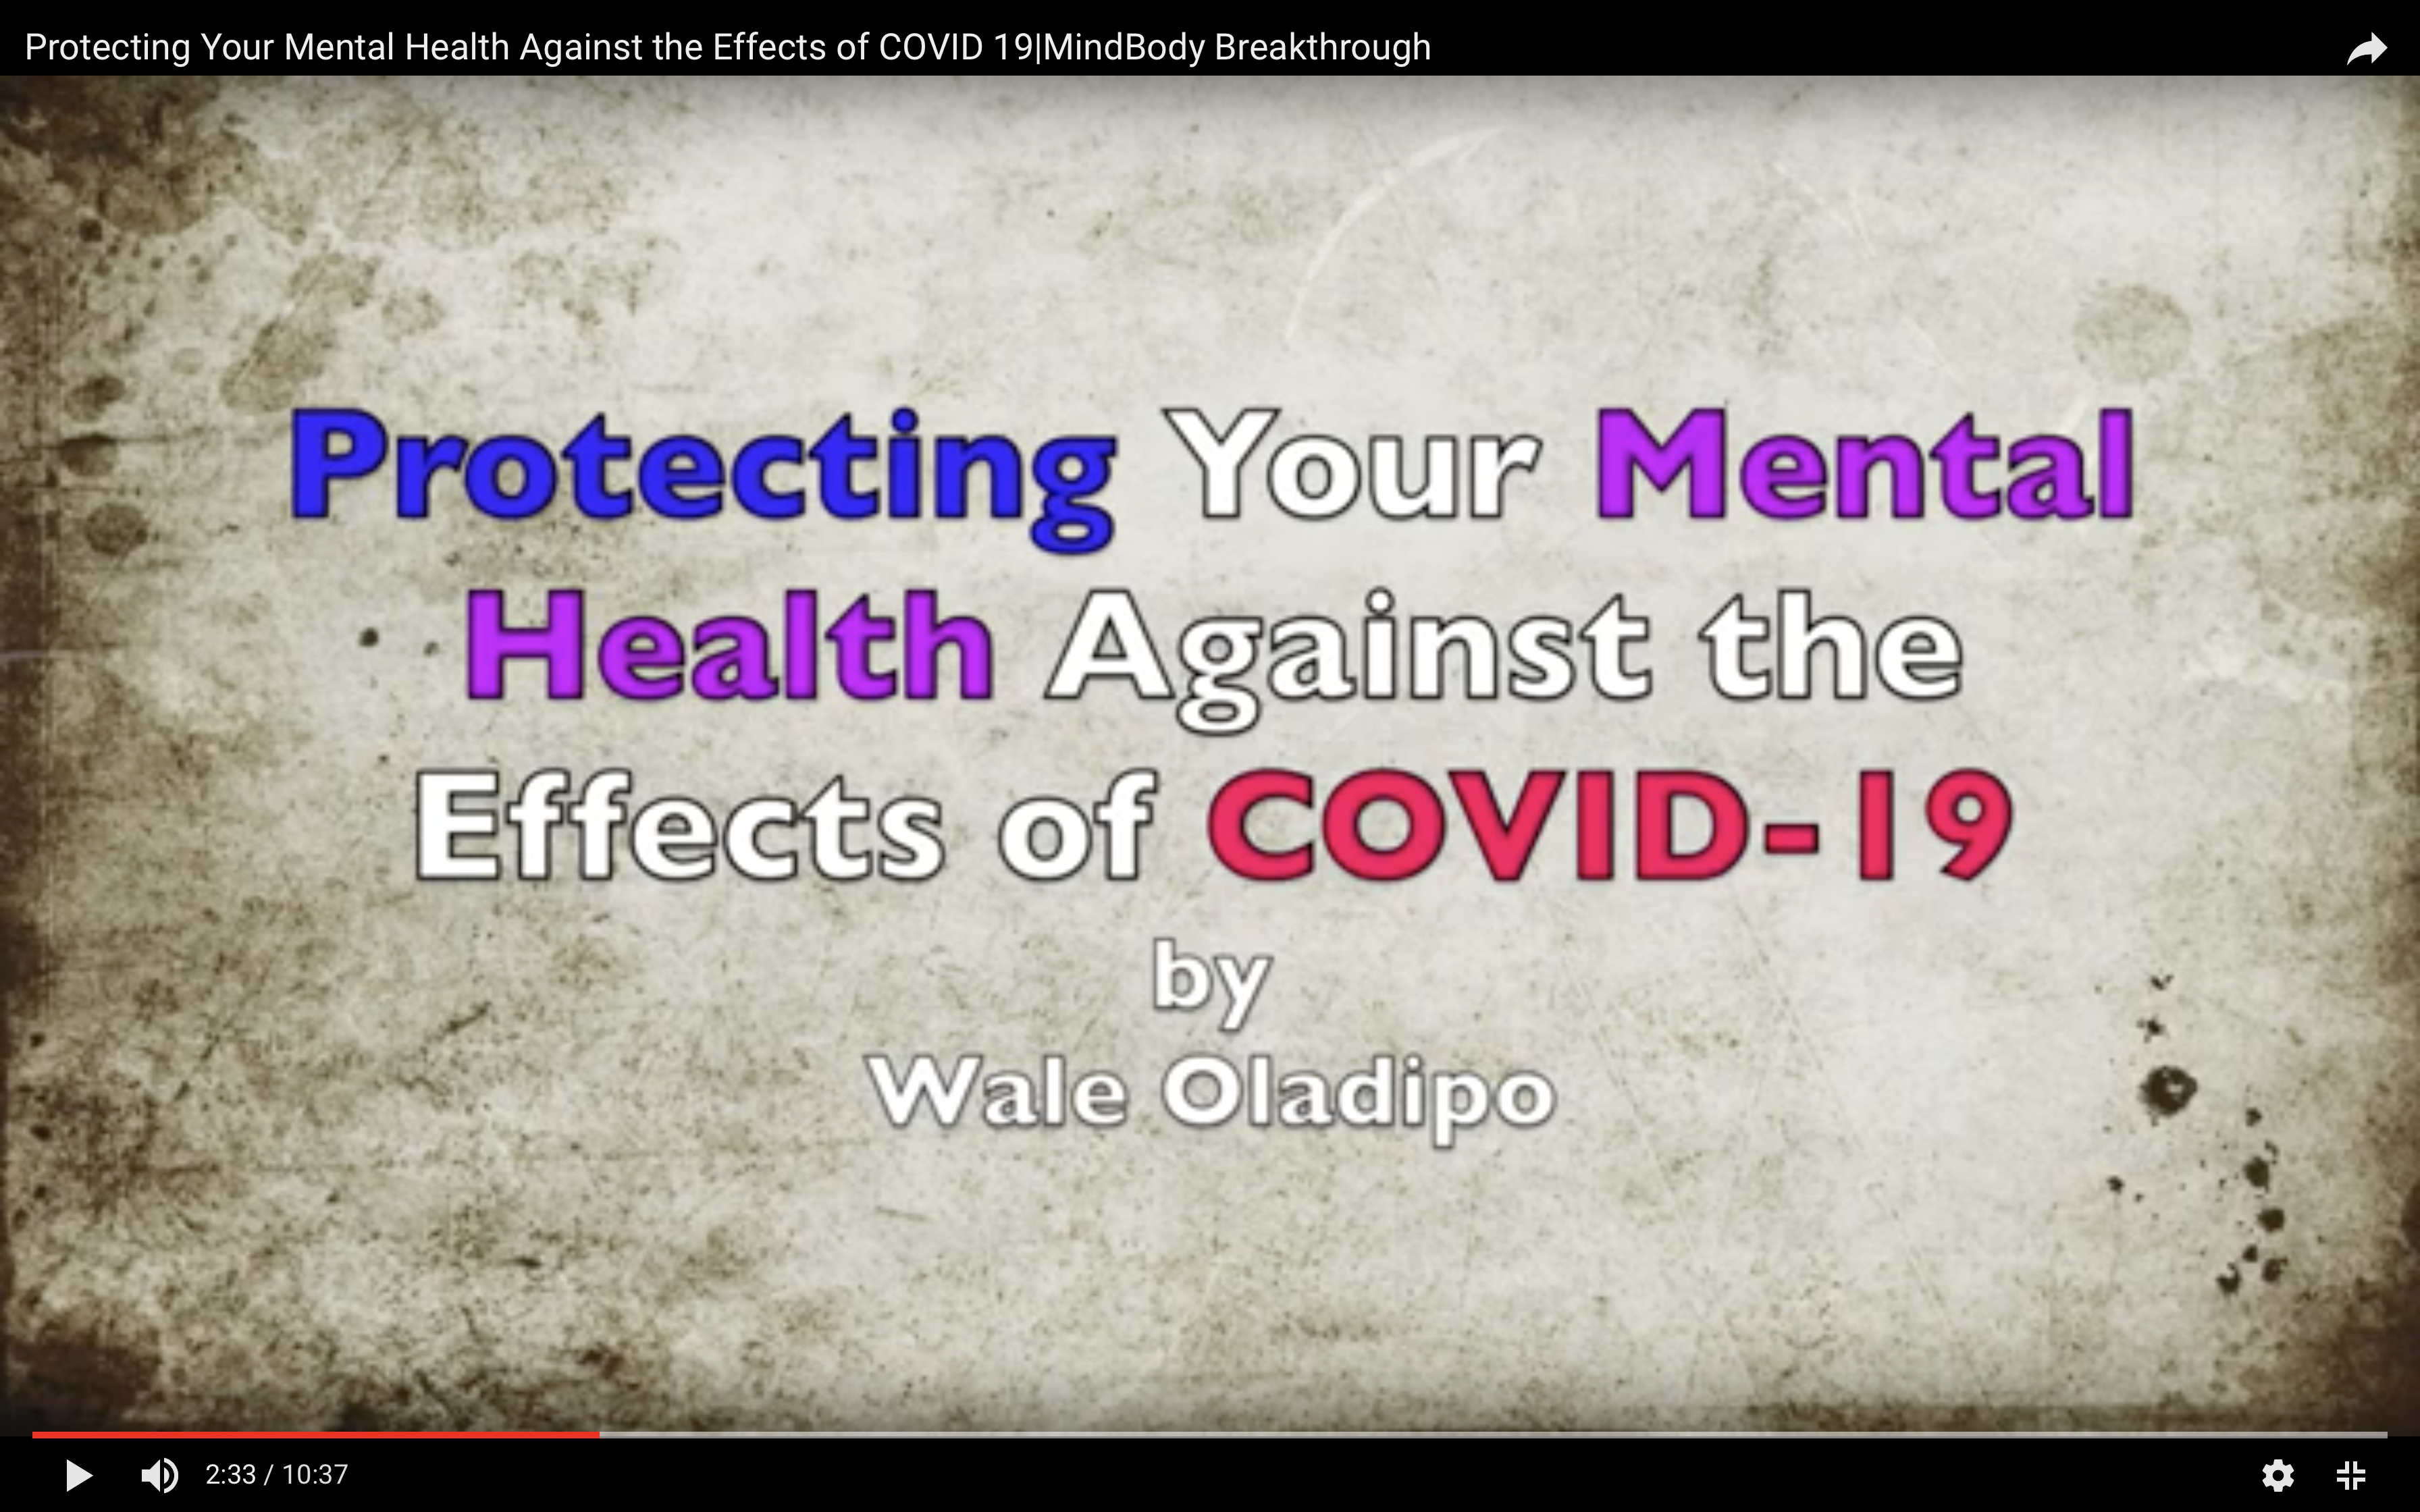 Protecting Your Mental Health Against the Effects of COVID-19|MindBody Breakthrough